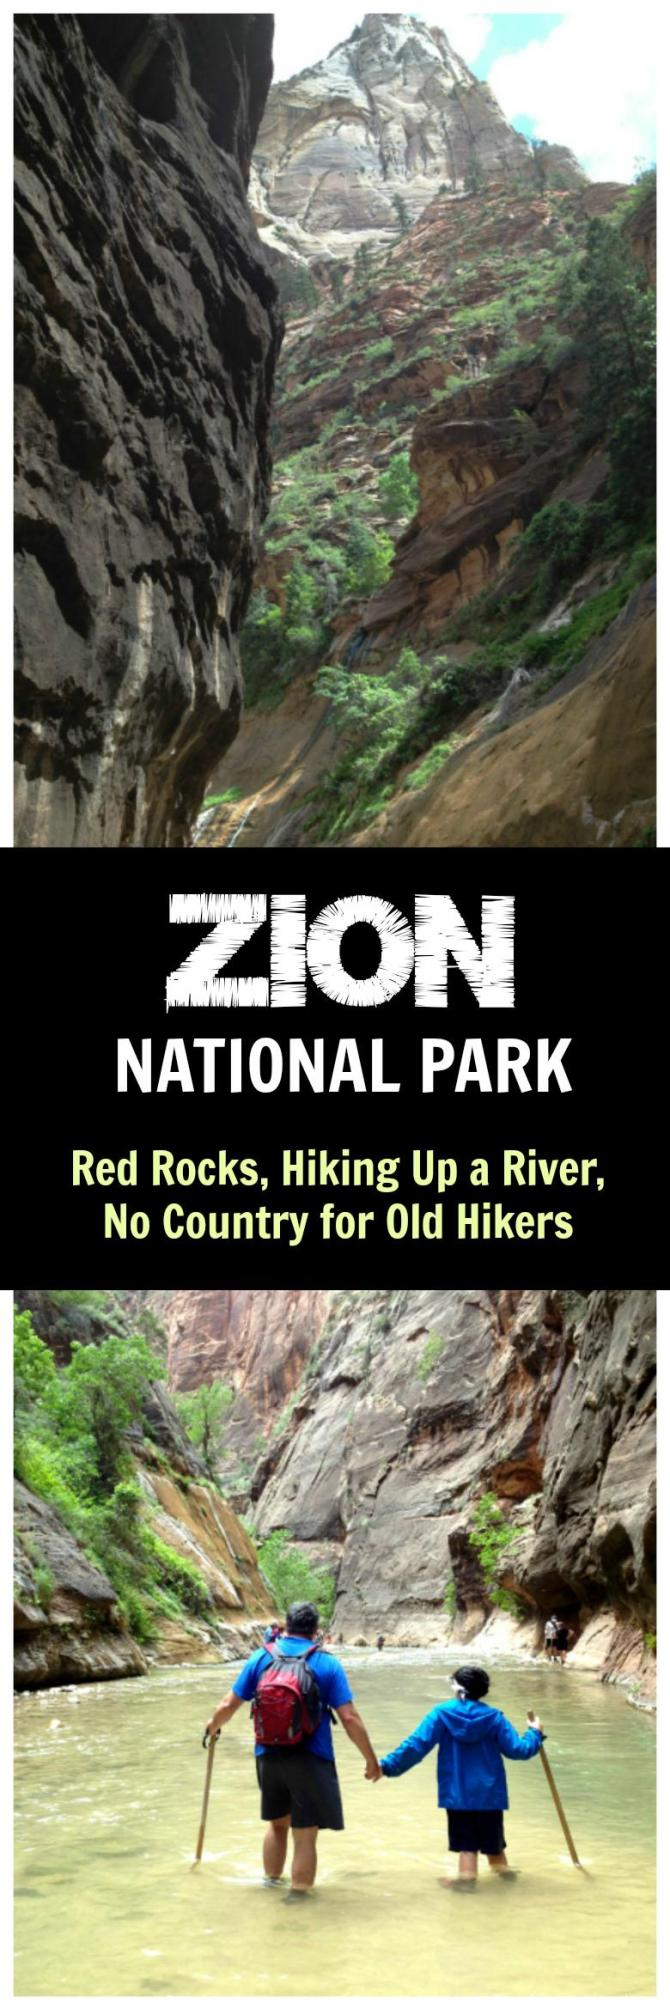 Day Tripping With Rick – St. George, Utah – Day 1 – Zion National Park